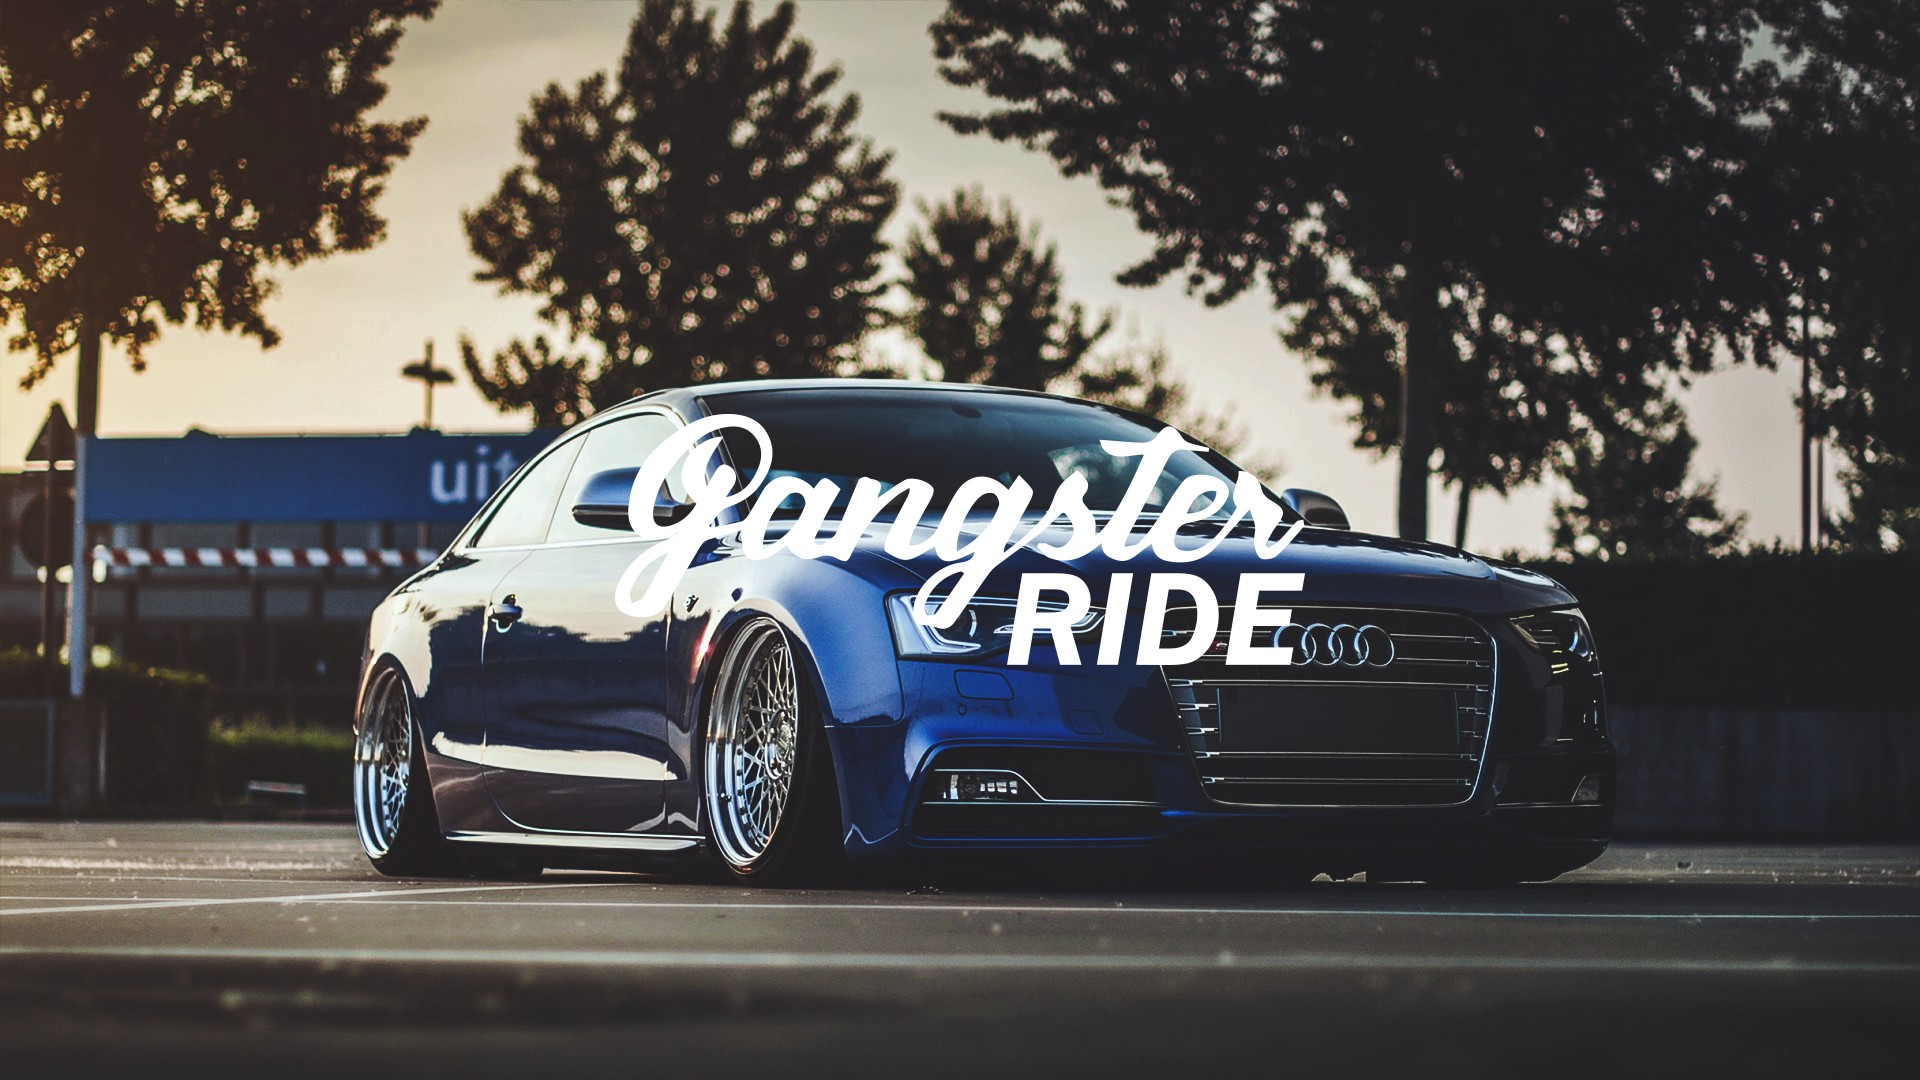 Full Hd 1080p Wallpapers Cars Gangster Ride Car Tuning Lowrider Audi Colorful